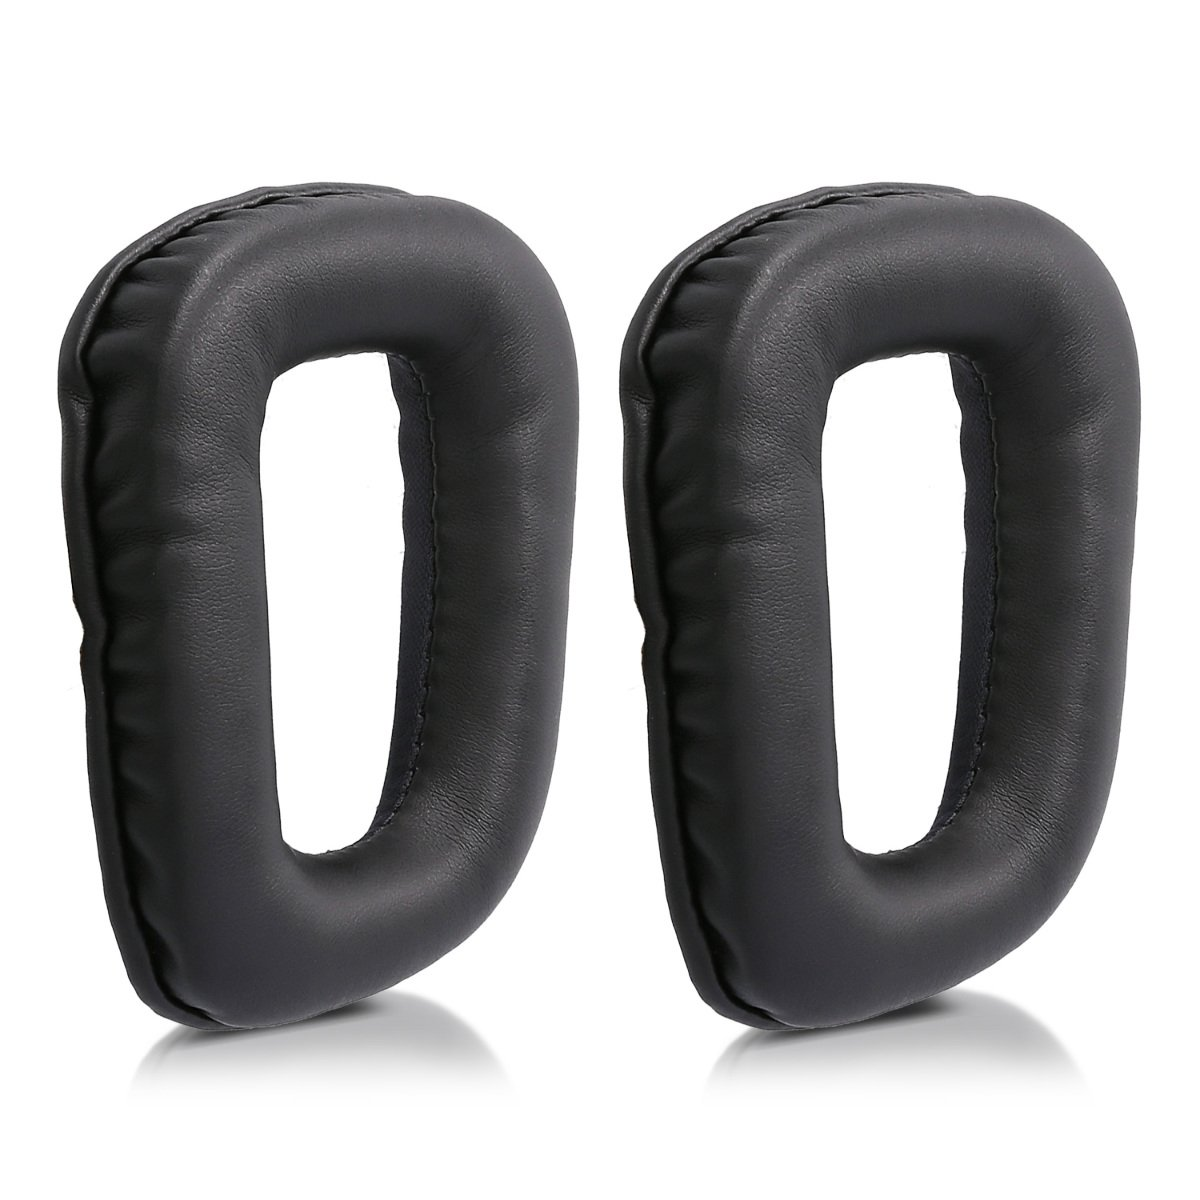 PU Leather Replacement Ear Pads Earpads For Logitech G430 G35 G930 F450 Headphones image